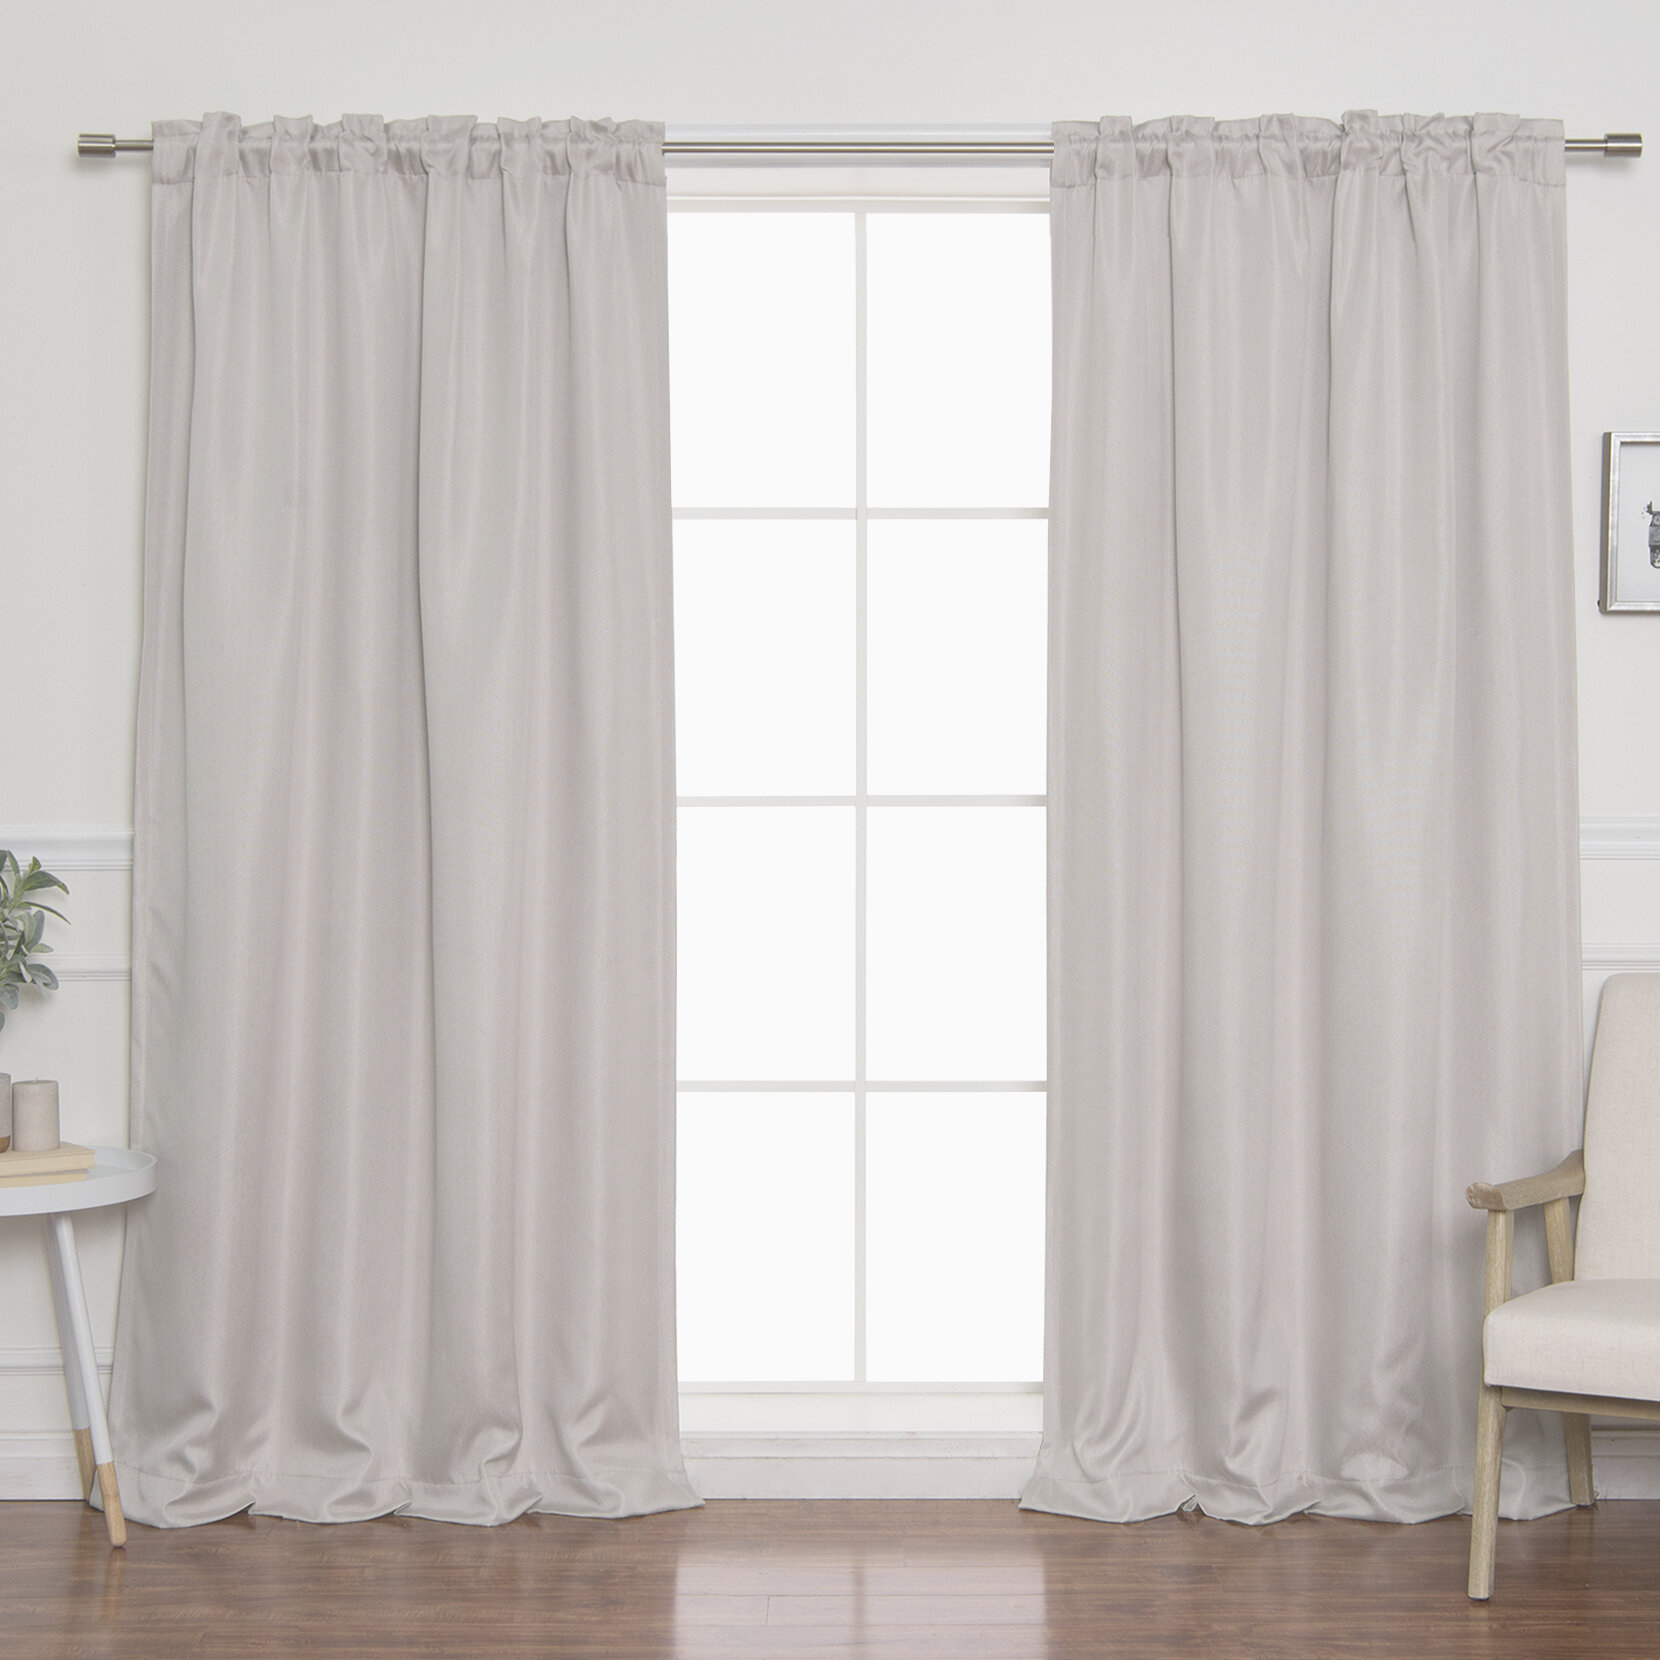 Vicenta Basketweave Faux Linen Solid Blackout Back Tab Top Curtain Panels For Heavy Faux Linen Single Curtain Panels (View 20 of 20)